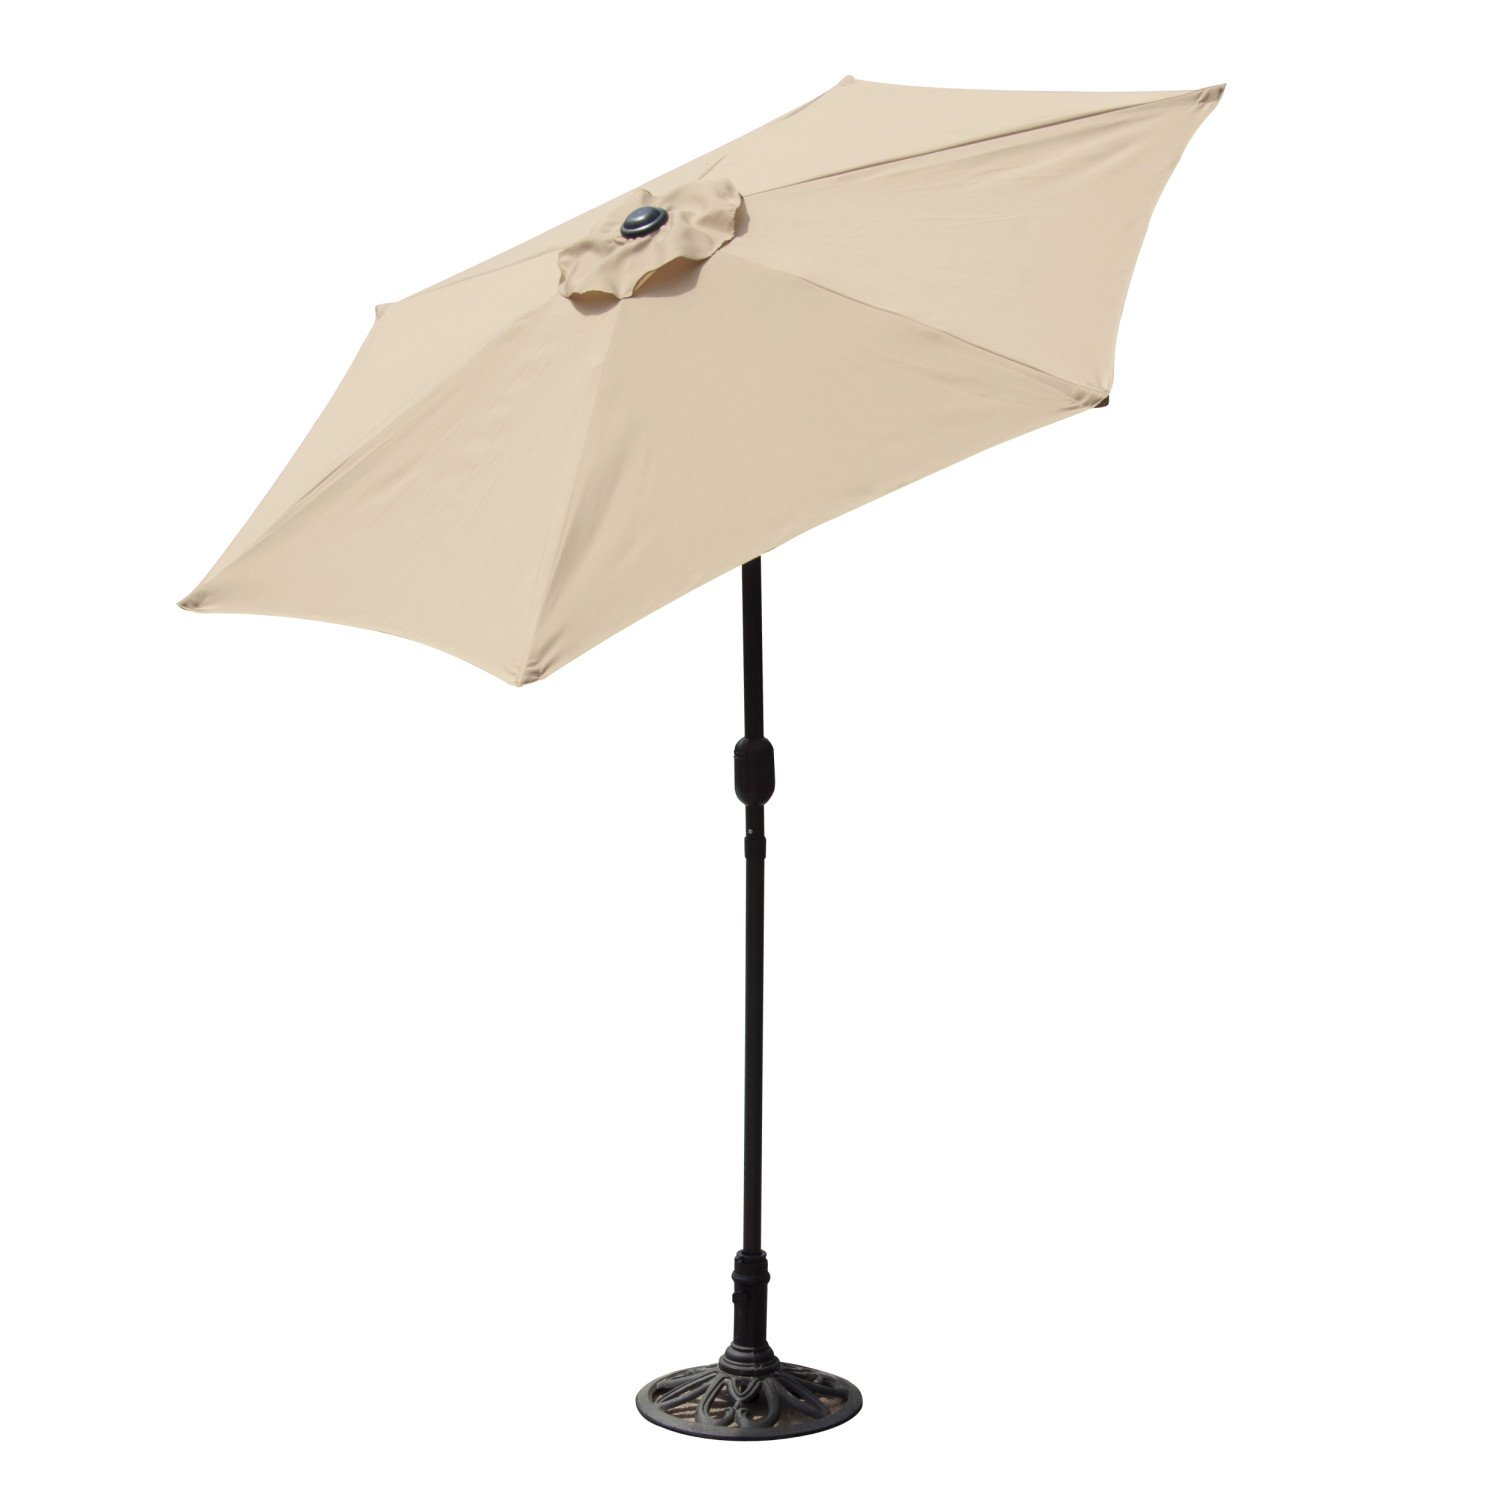 Budge Industries PATUA1100U Aluminum Patio Umbrella with Crank Lift and Tilt Function, 7-Feet, Burgundy